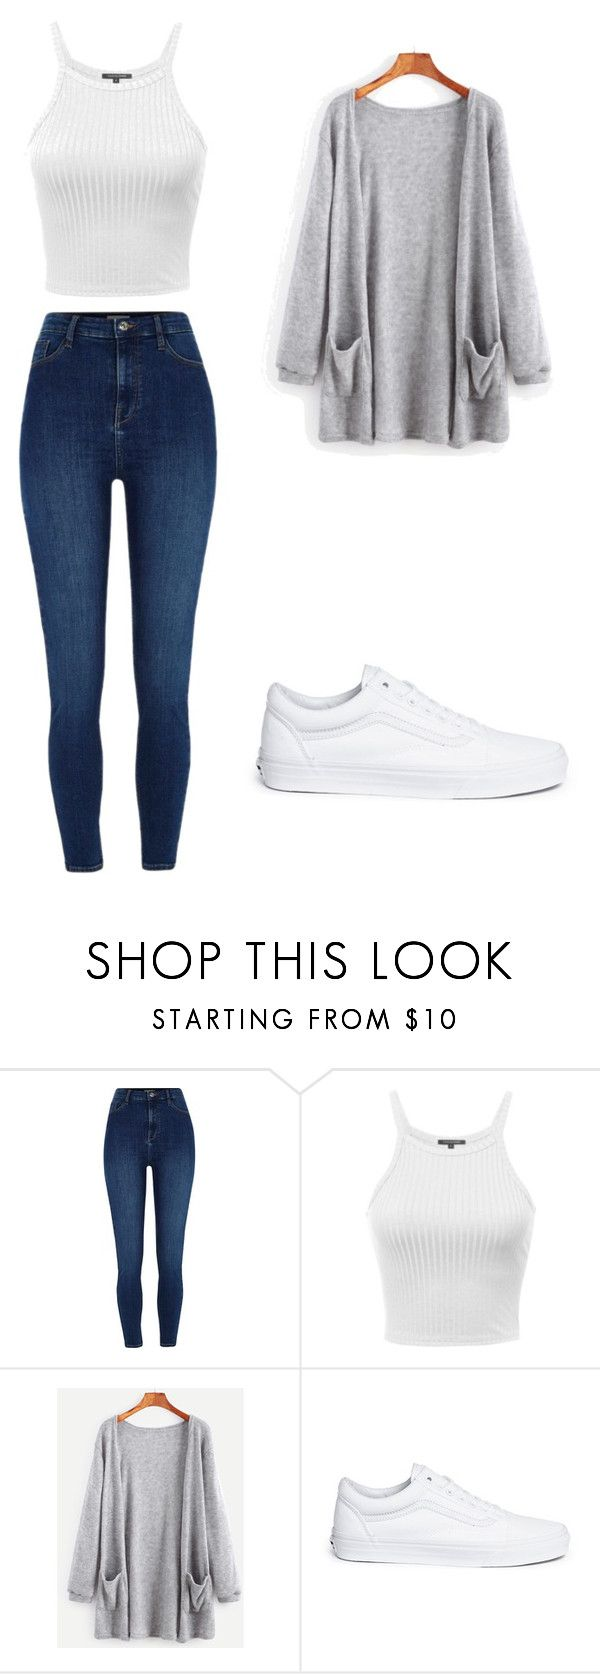 """Untitled #141"" by kaylagutz on Polyvore featuring River Island and Vans"